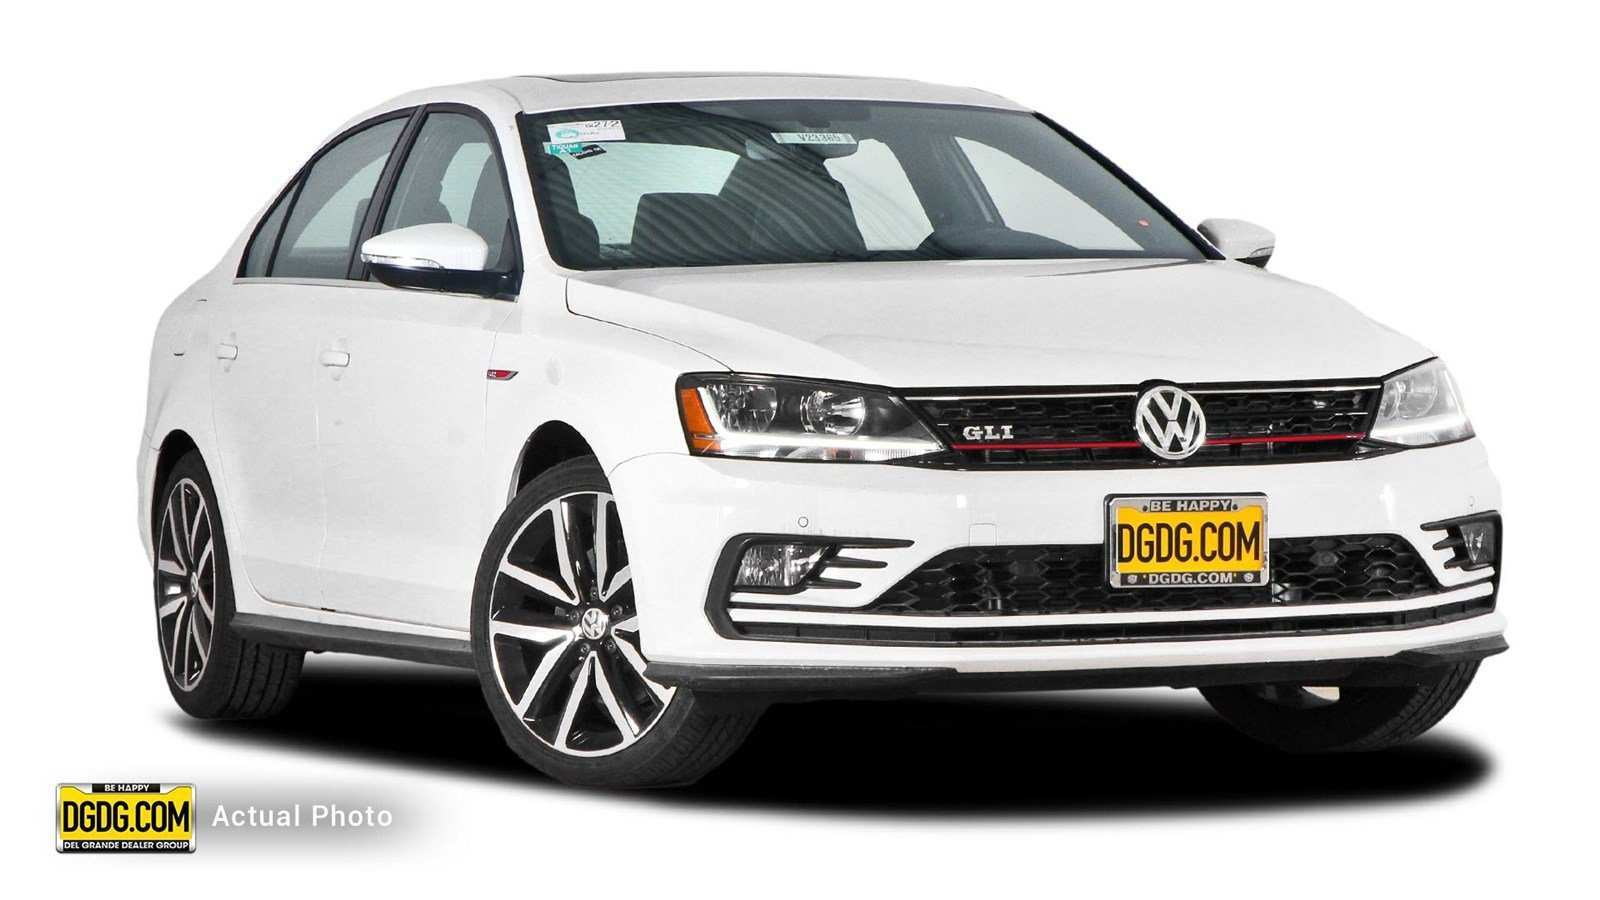 80 All New 2019 VW Jetta Tdi Gli Price Design And Review